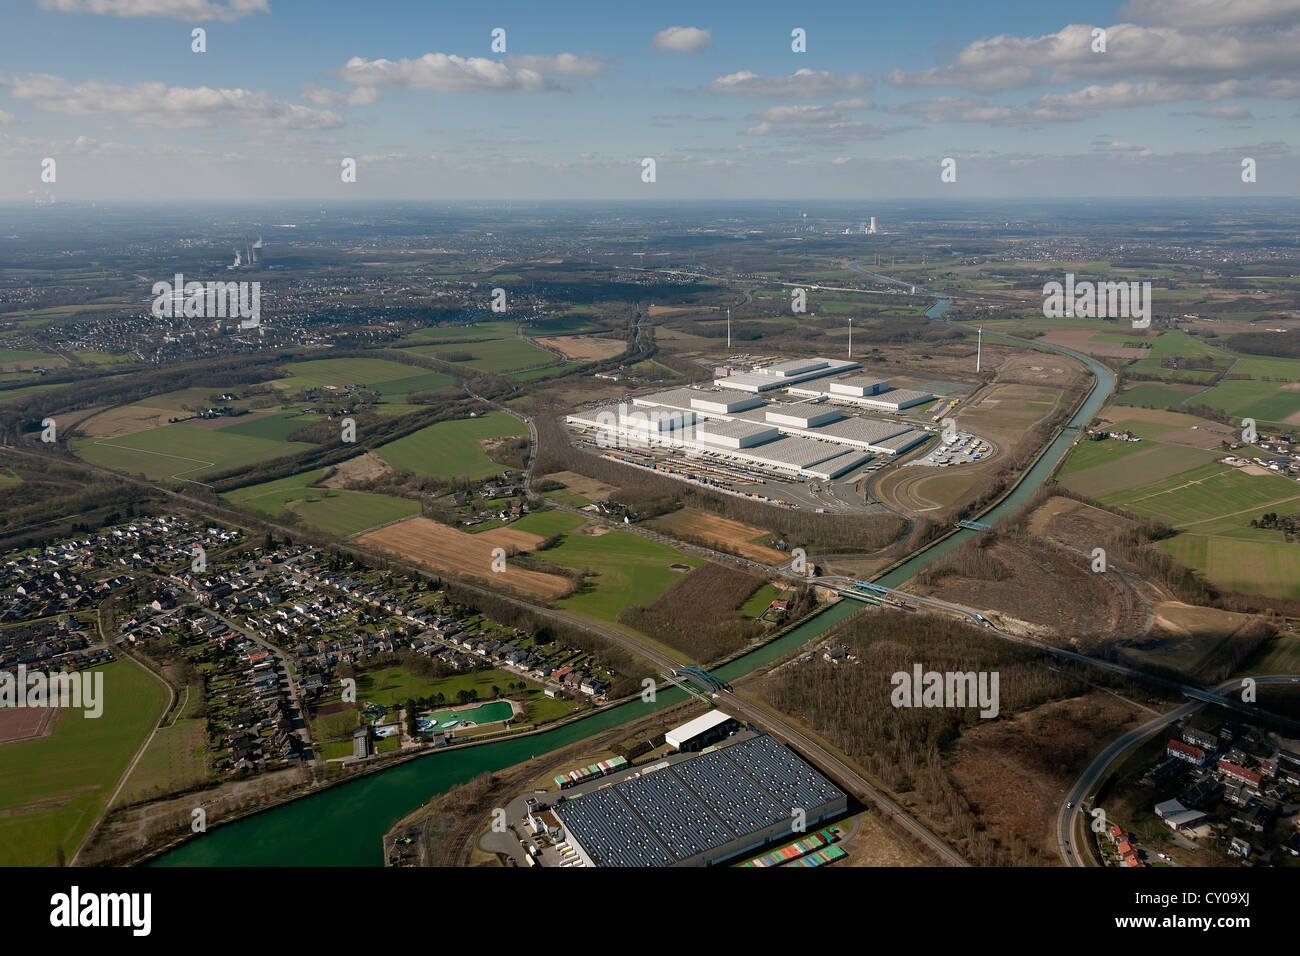 Aerial view, IKEA distribution center, Ellinghausen, European distribution center in Dortmund, Ruhr area, North - Stock Image